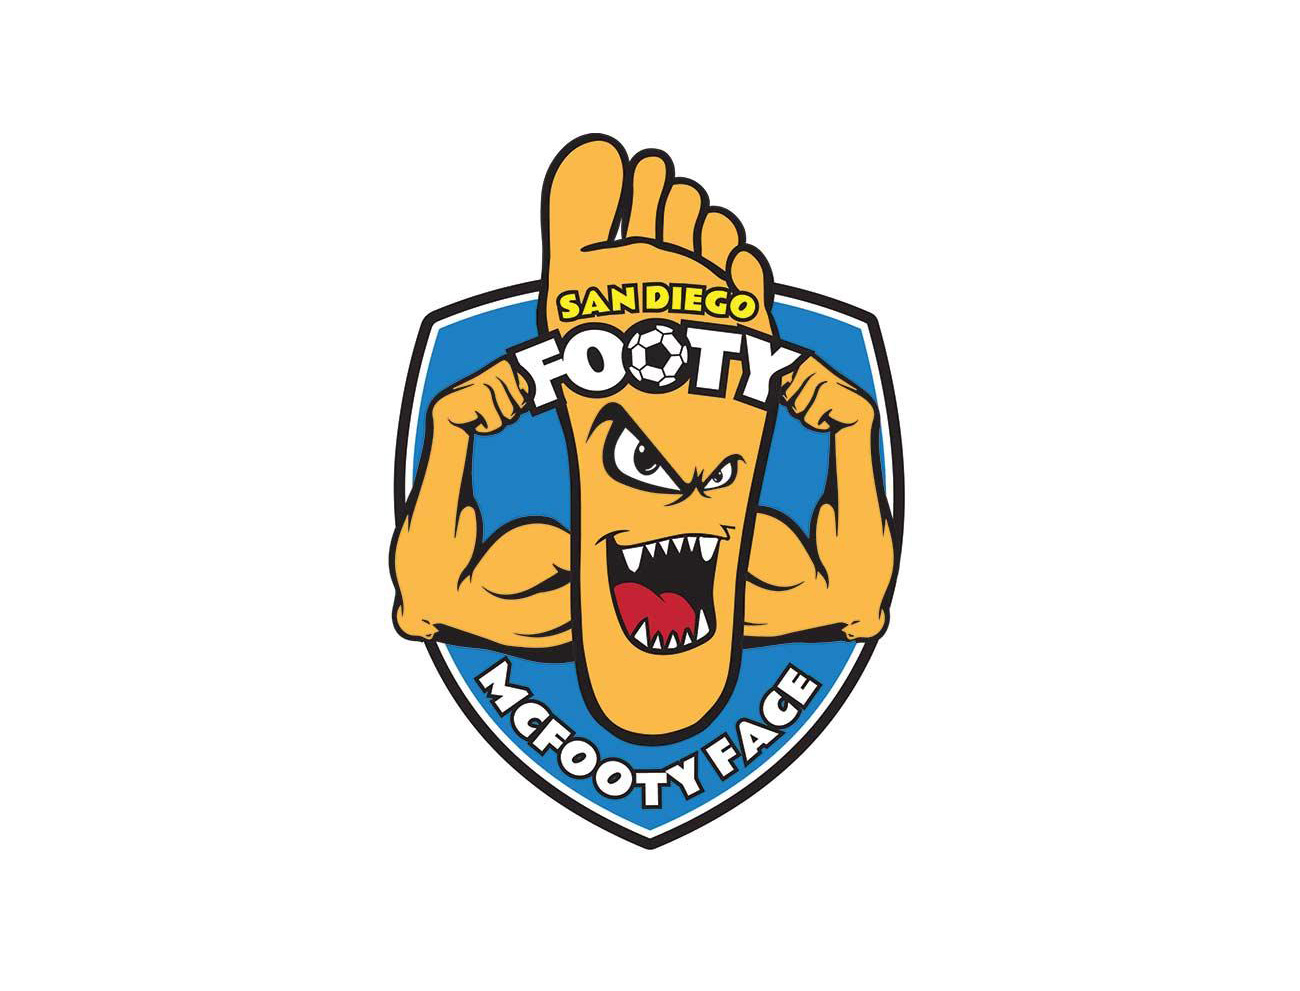 Footy McFooty Face (April Fools)